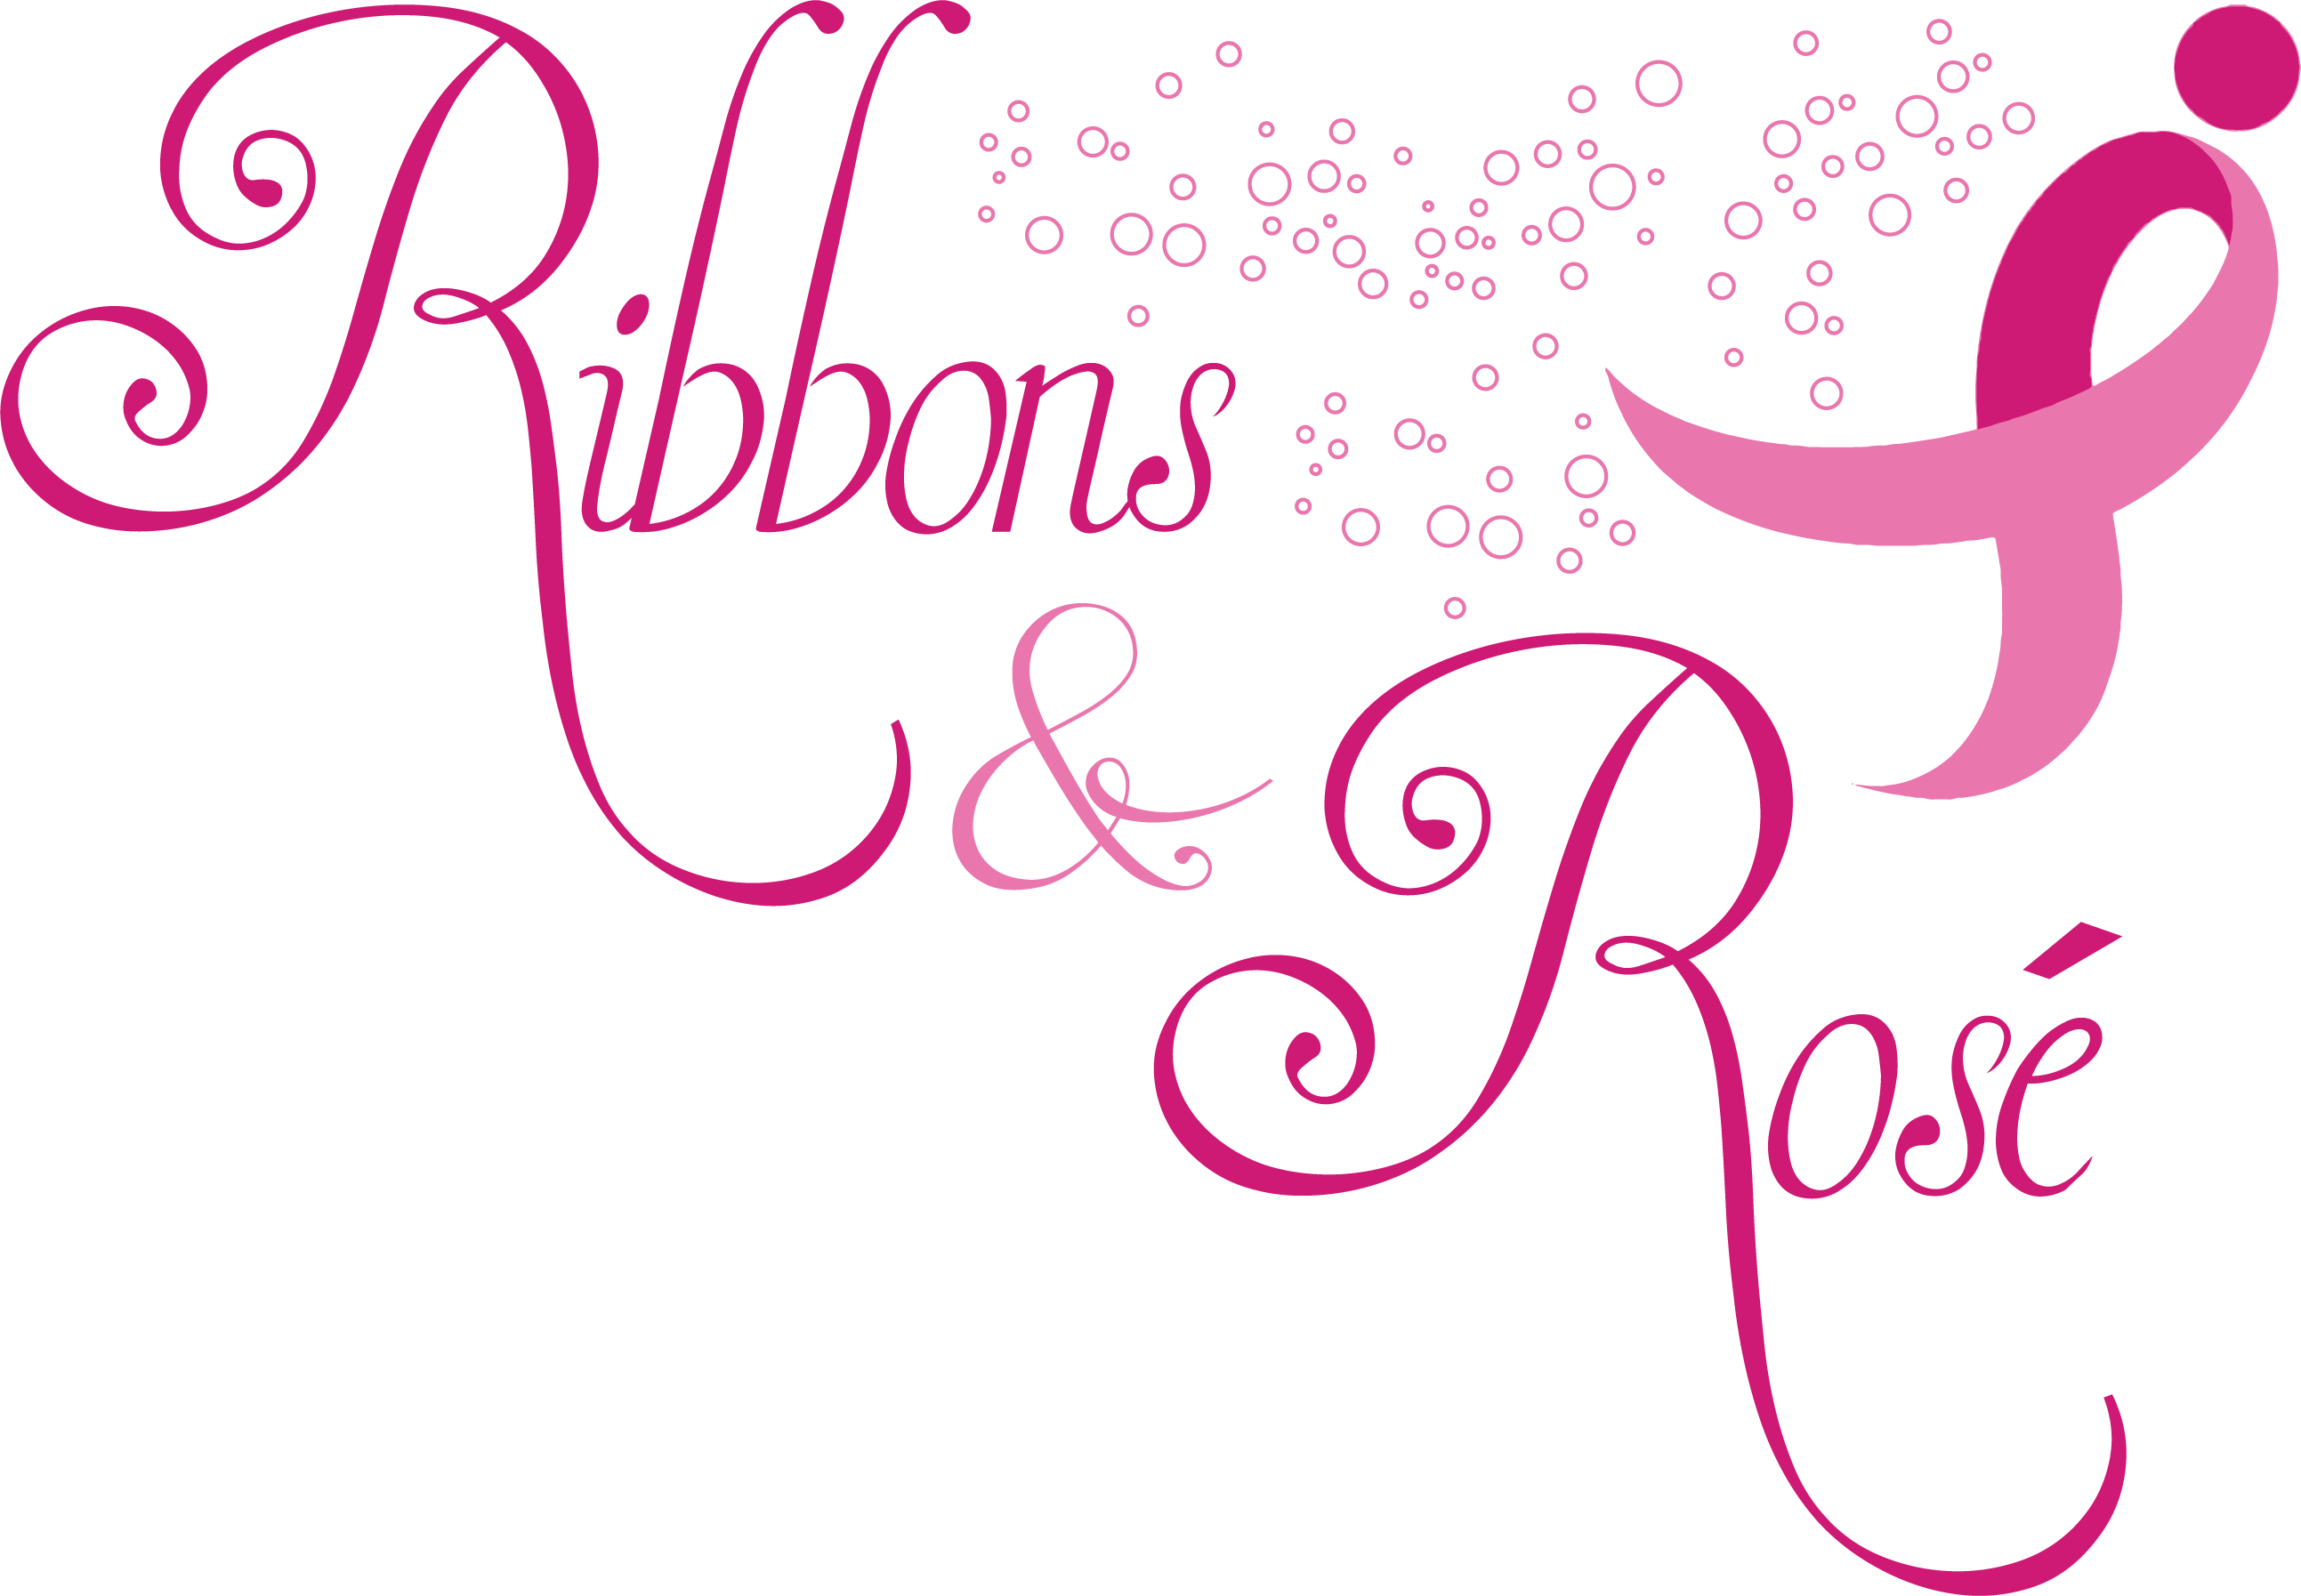 Ribbons & Rose Logo Idea v2.png